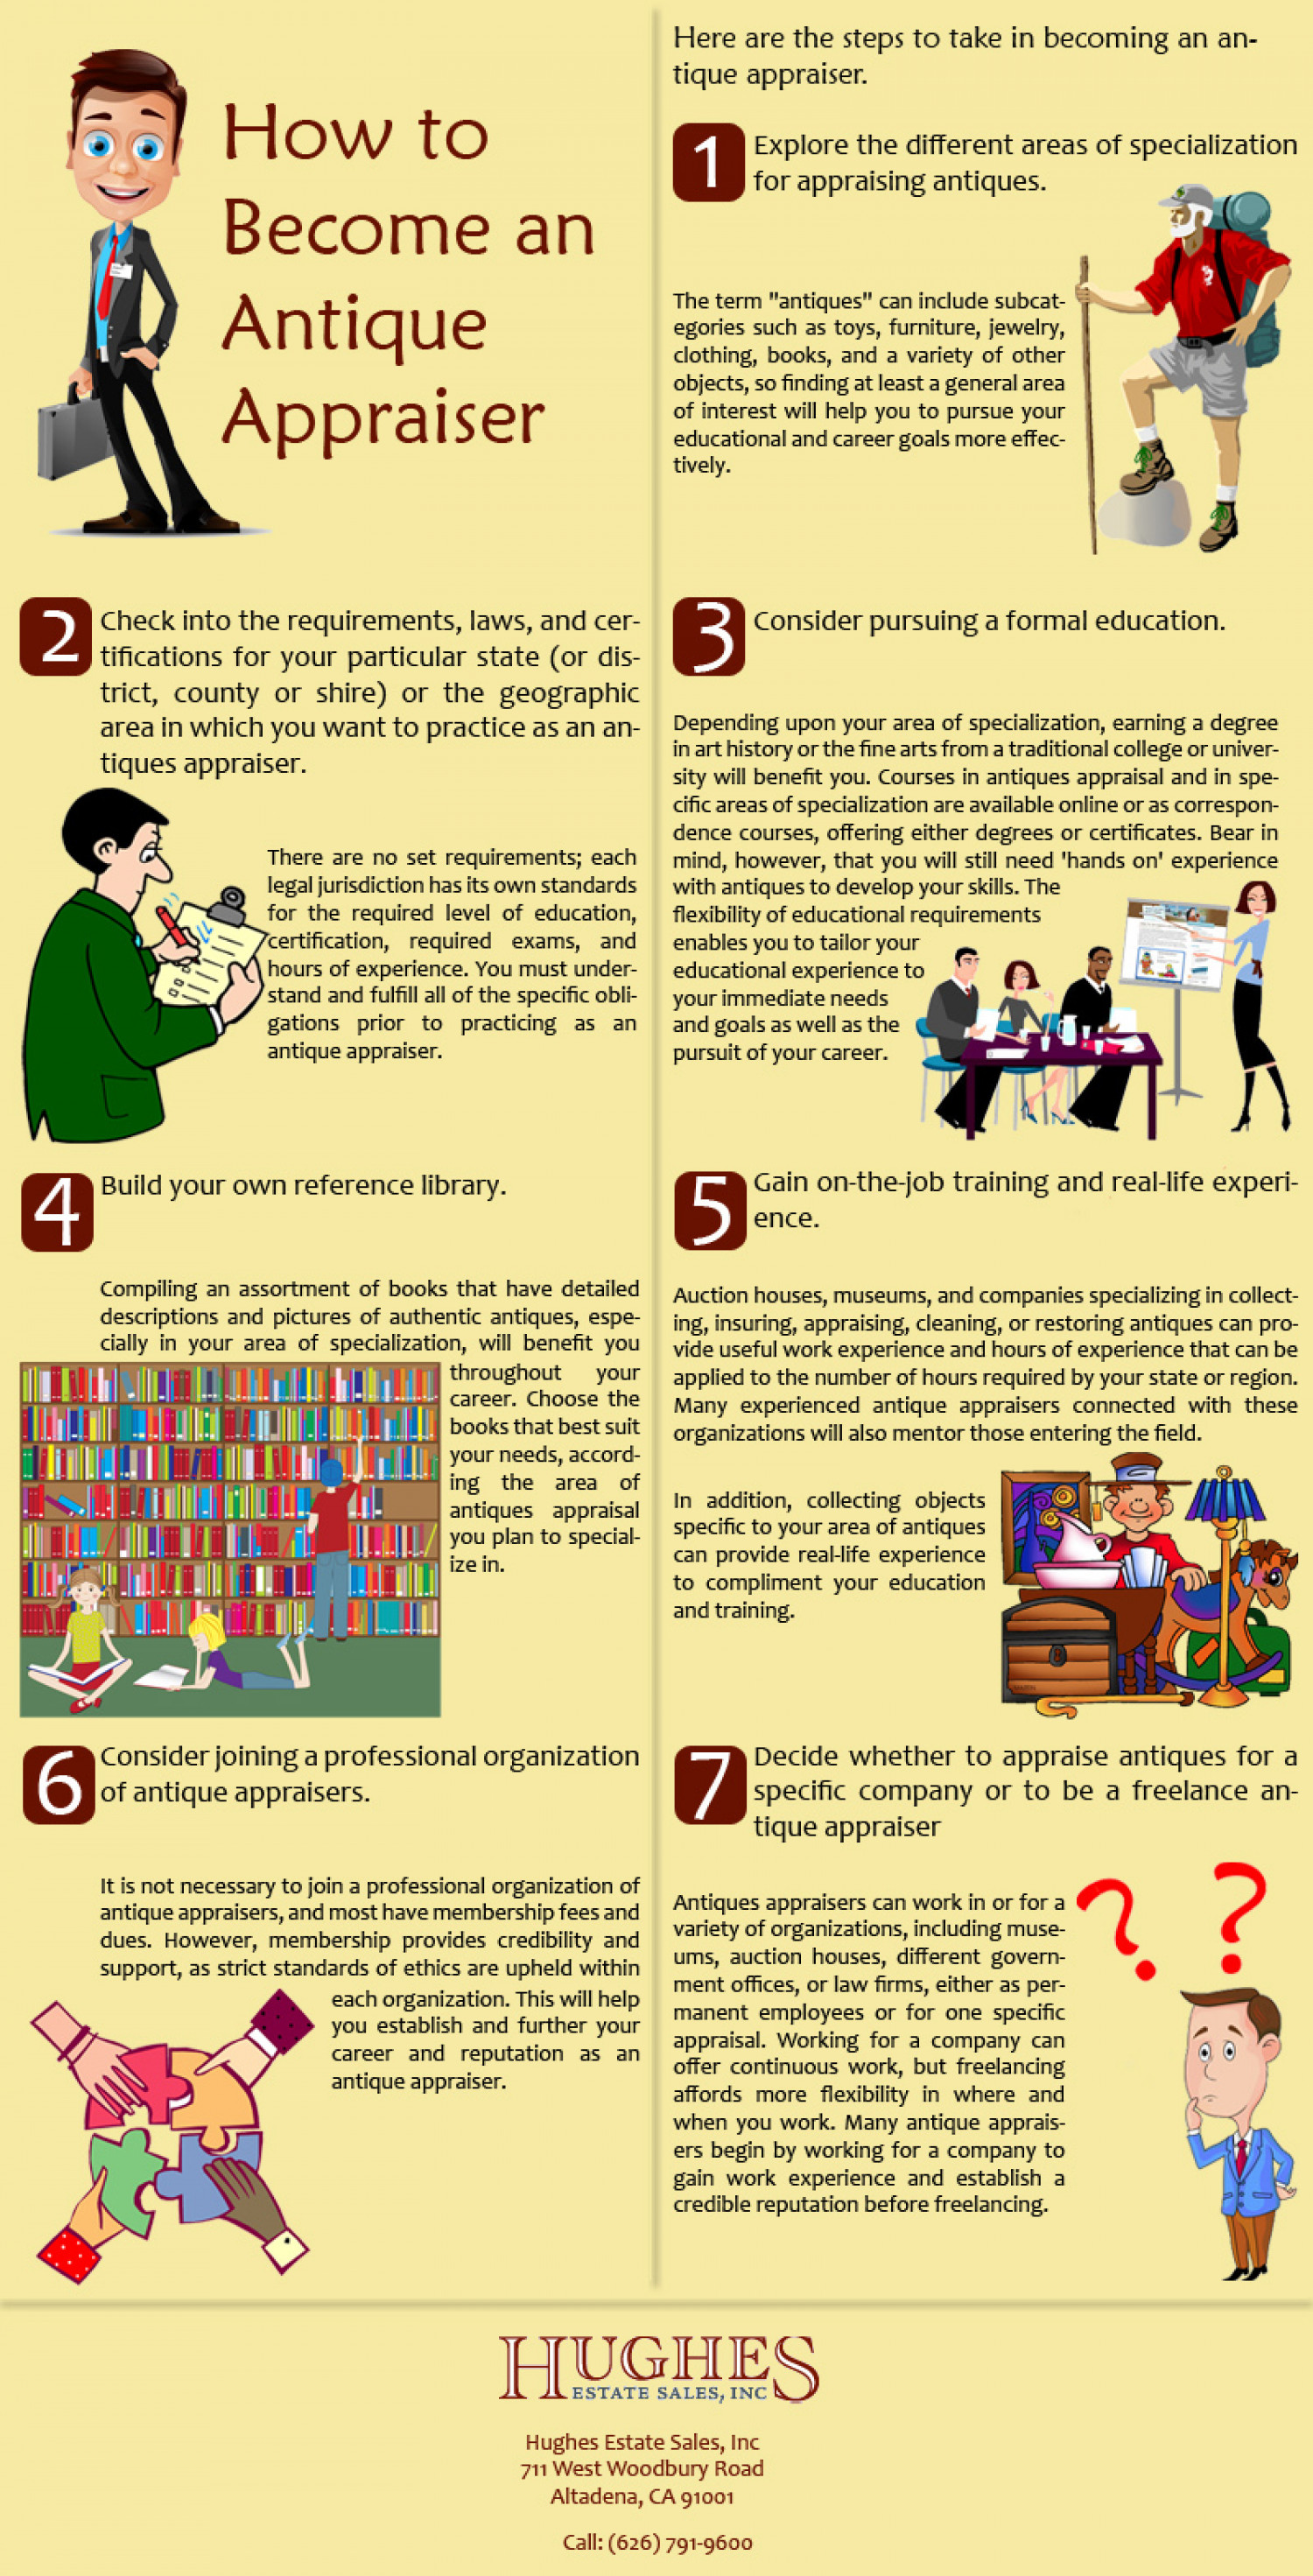 Need Antique Appraisals? Be an Antique Appraiser Infographic